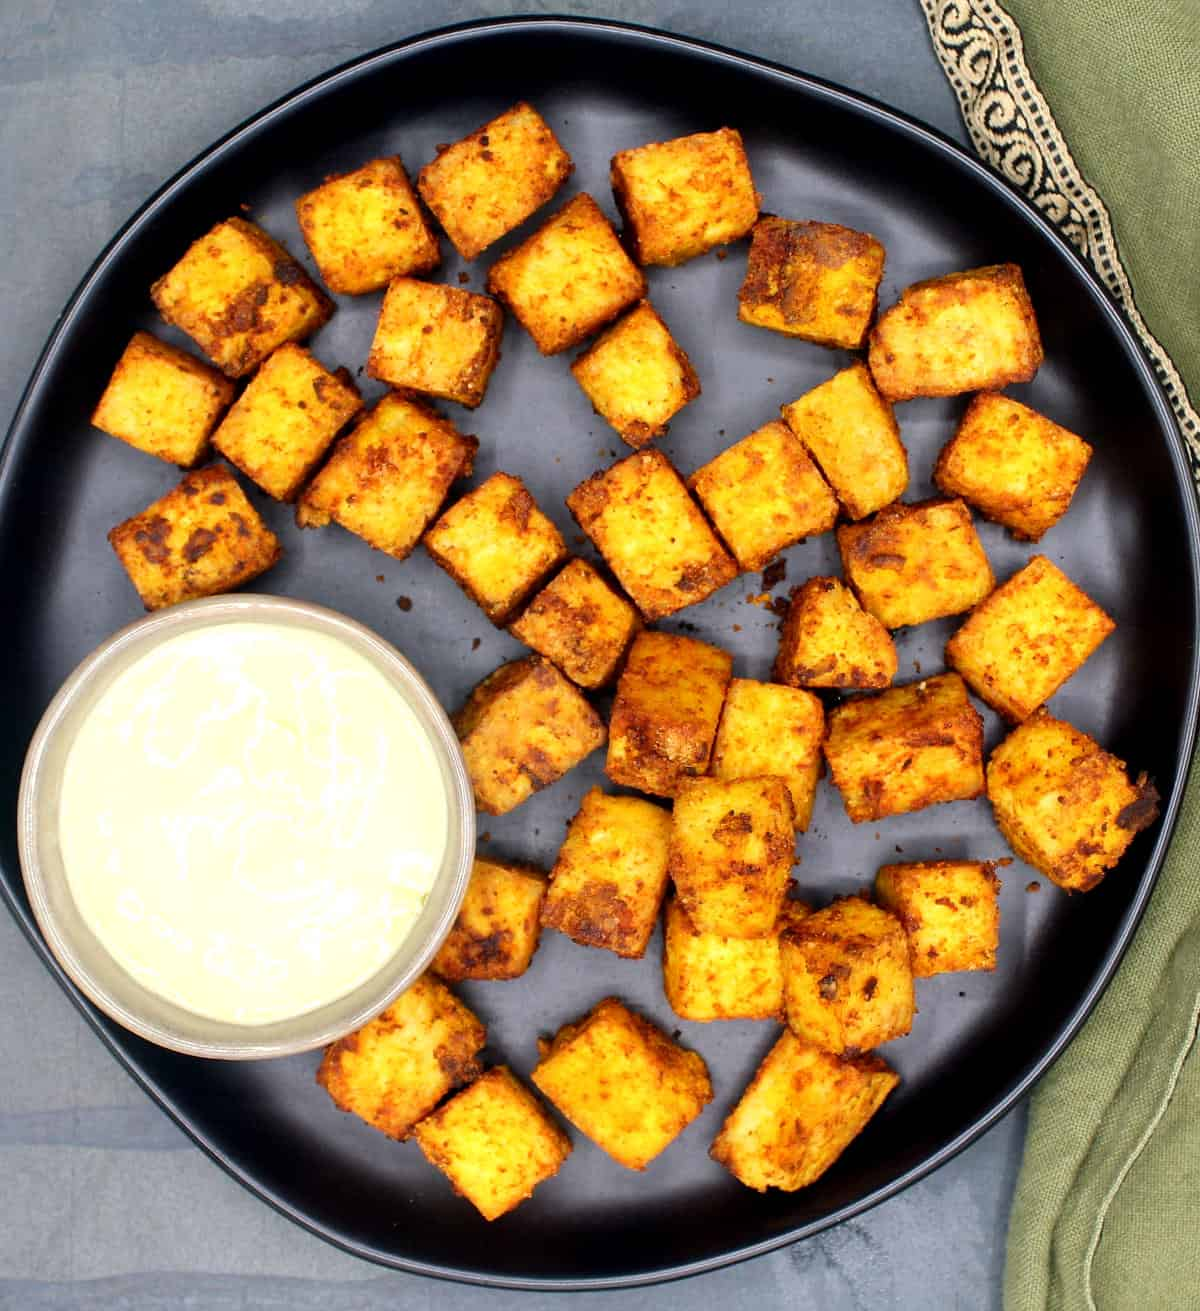 Photo of air fryer tofu cubes on a black plate with a creamy vegan mayo dipping sauce and a green napkin.